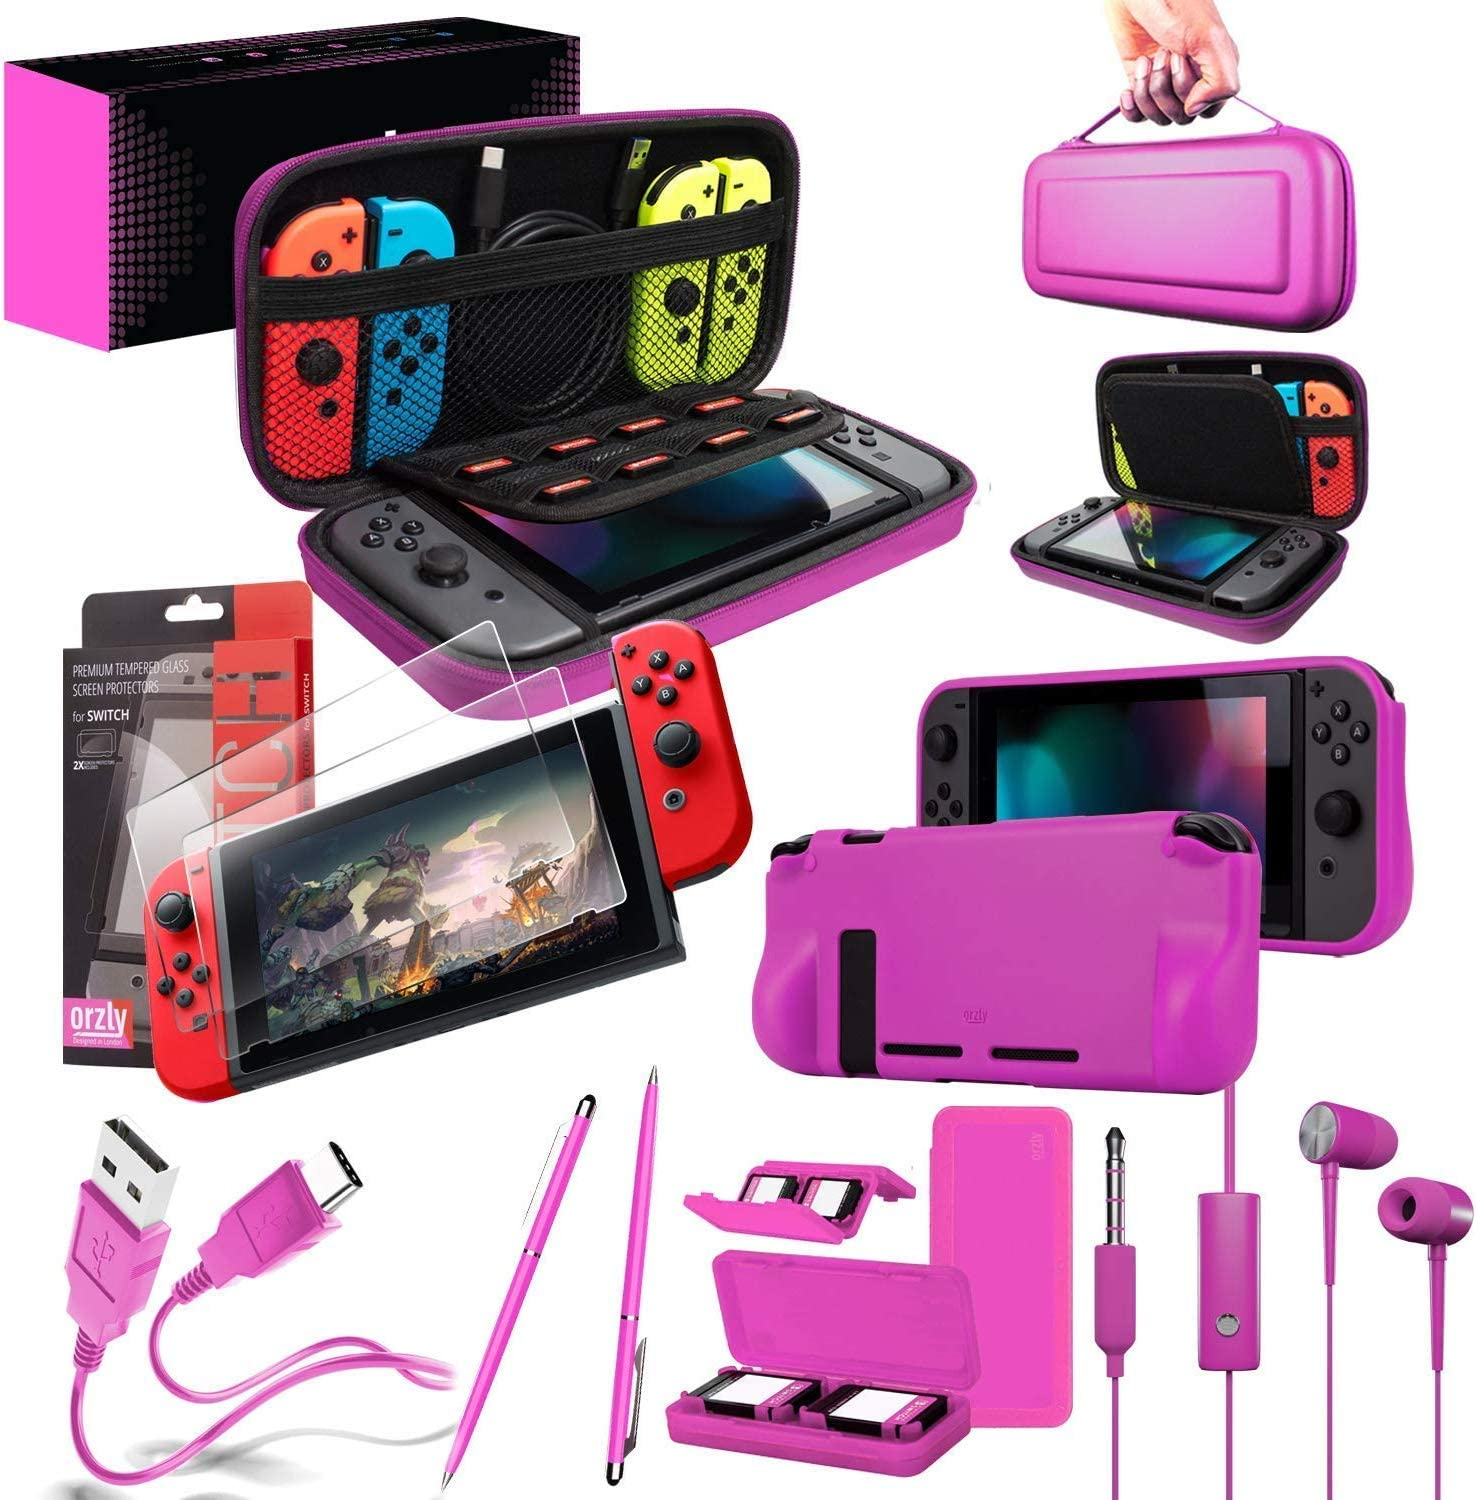 Orzly Switch Accessories Bundle – Includes Orzly Carry Case for Nintendo Switch Console, Tempered Glass Screen Protectors, USB Charging Cable, Switch Games Case, Comfort Grip Case & Headphones [Pink]